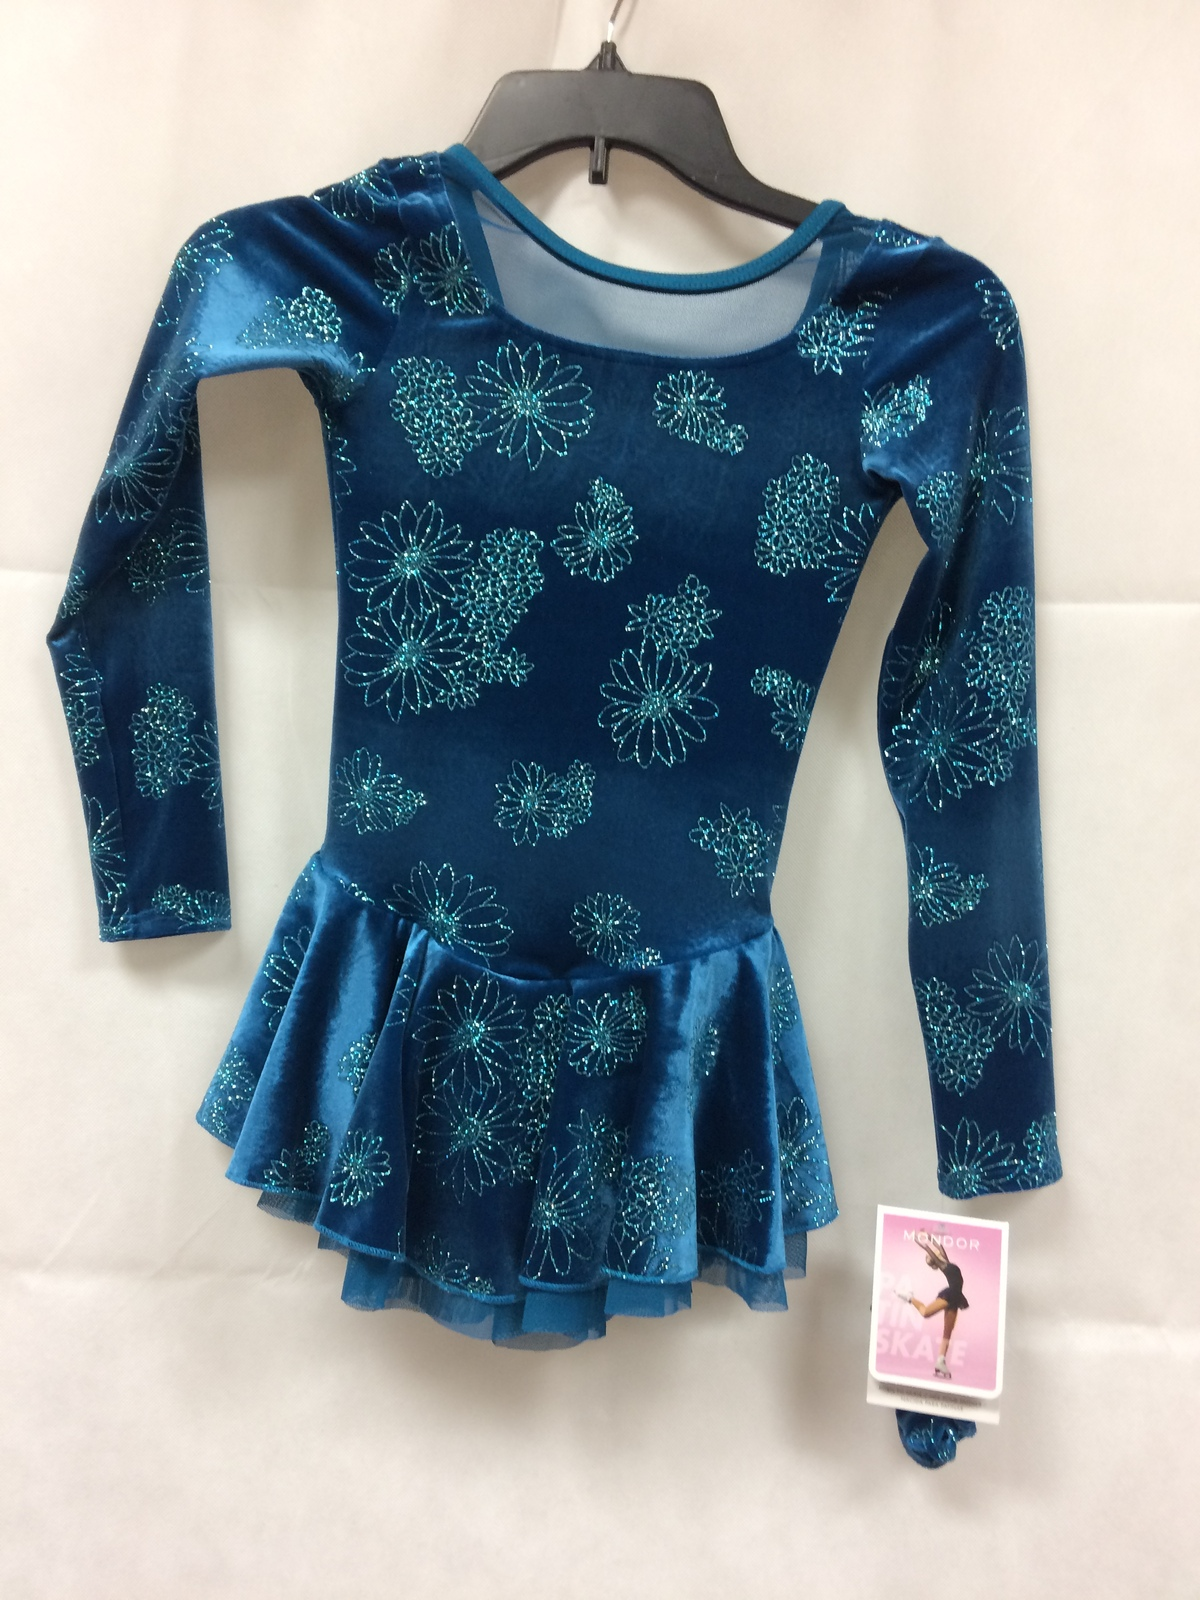 Primary image for Mondor Model 2762 Girls Skating Dress - Teal Daisy Size Child 10-12